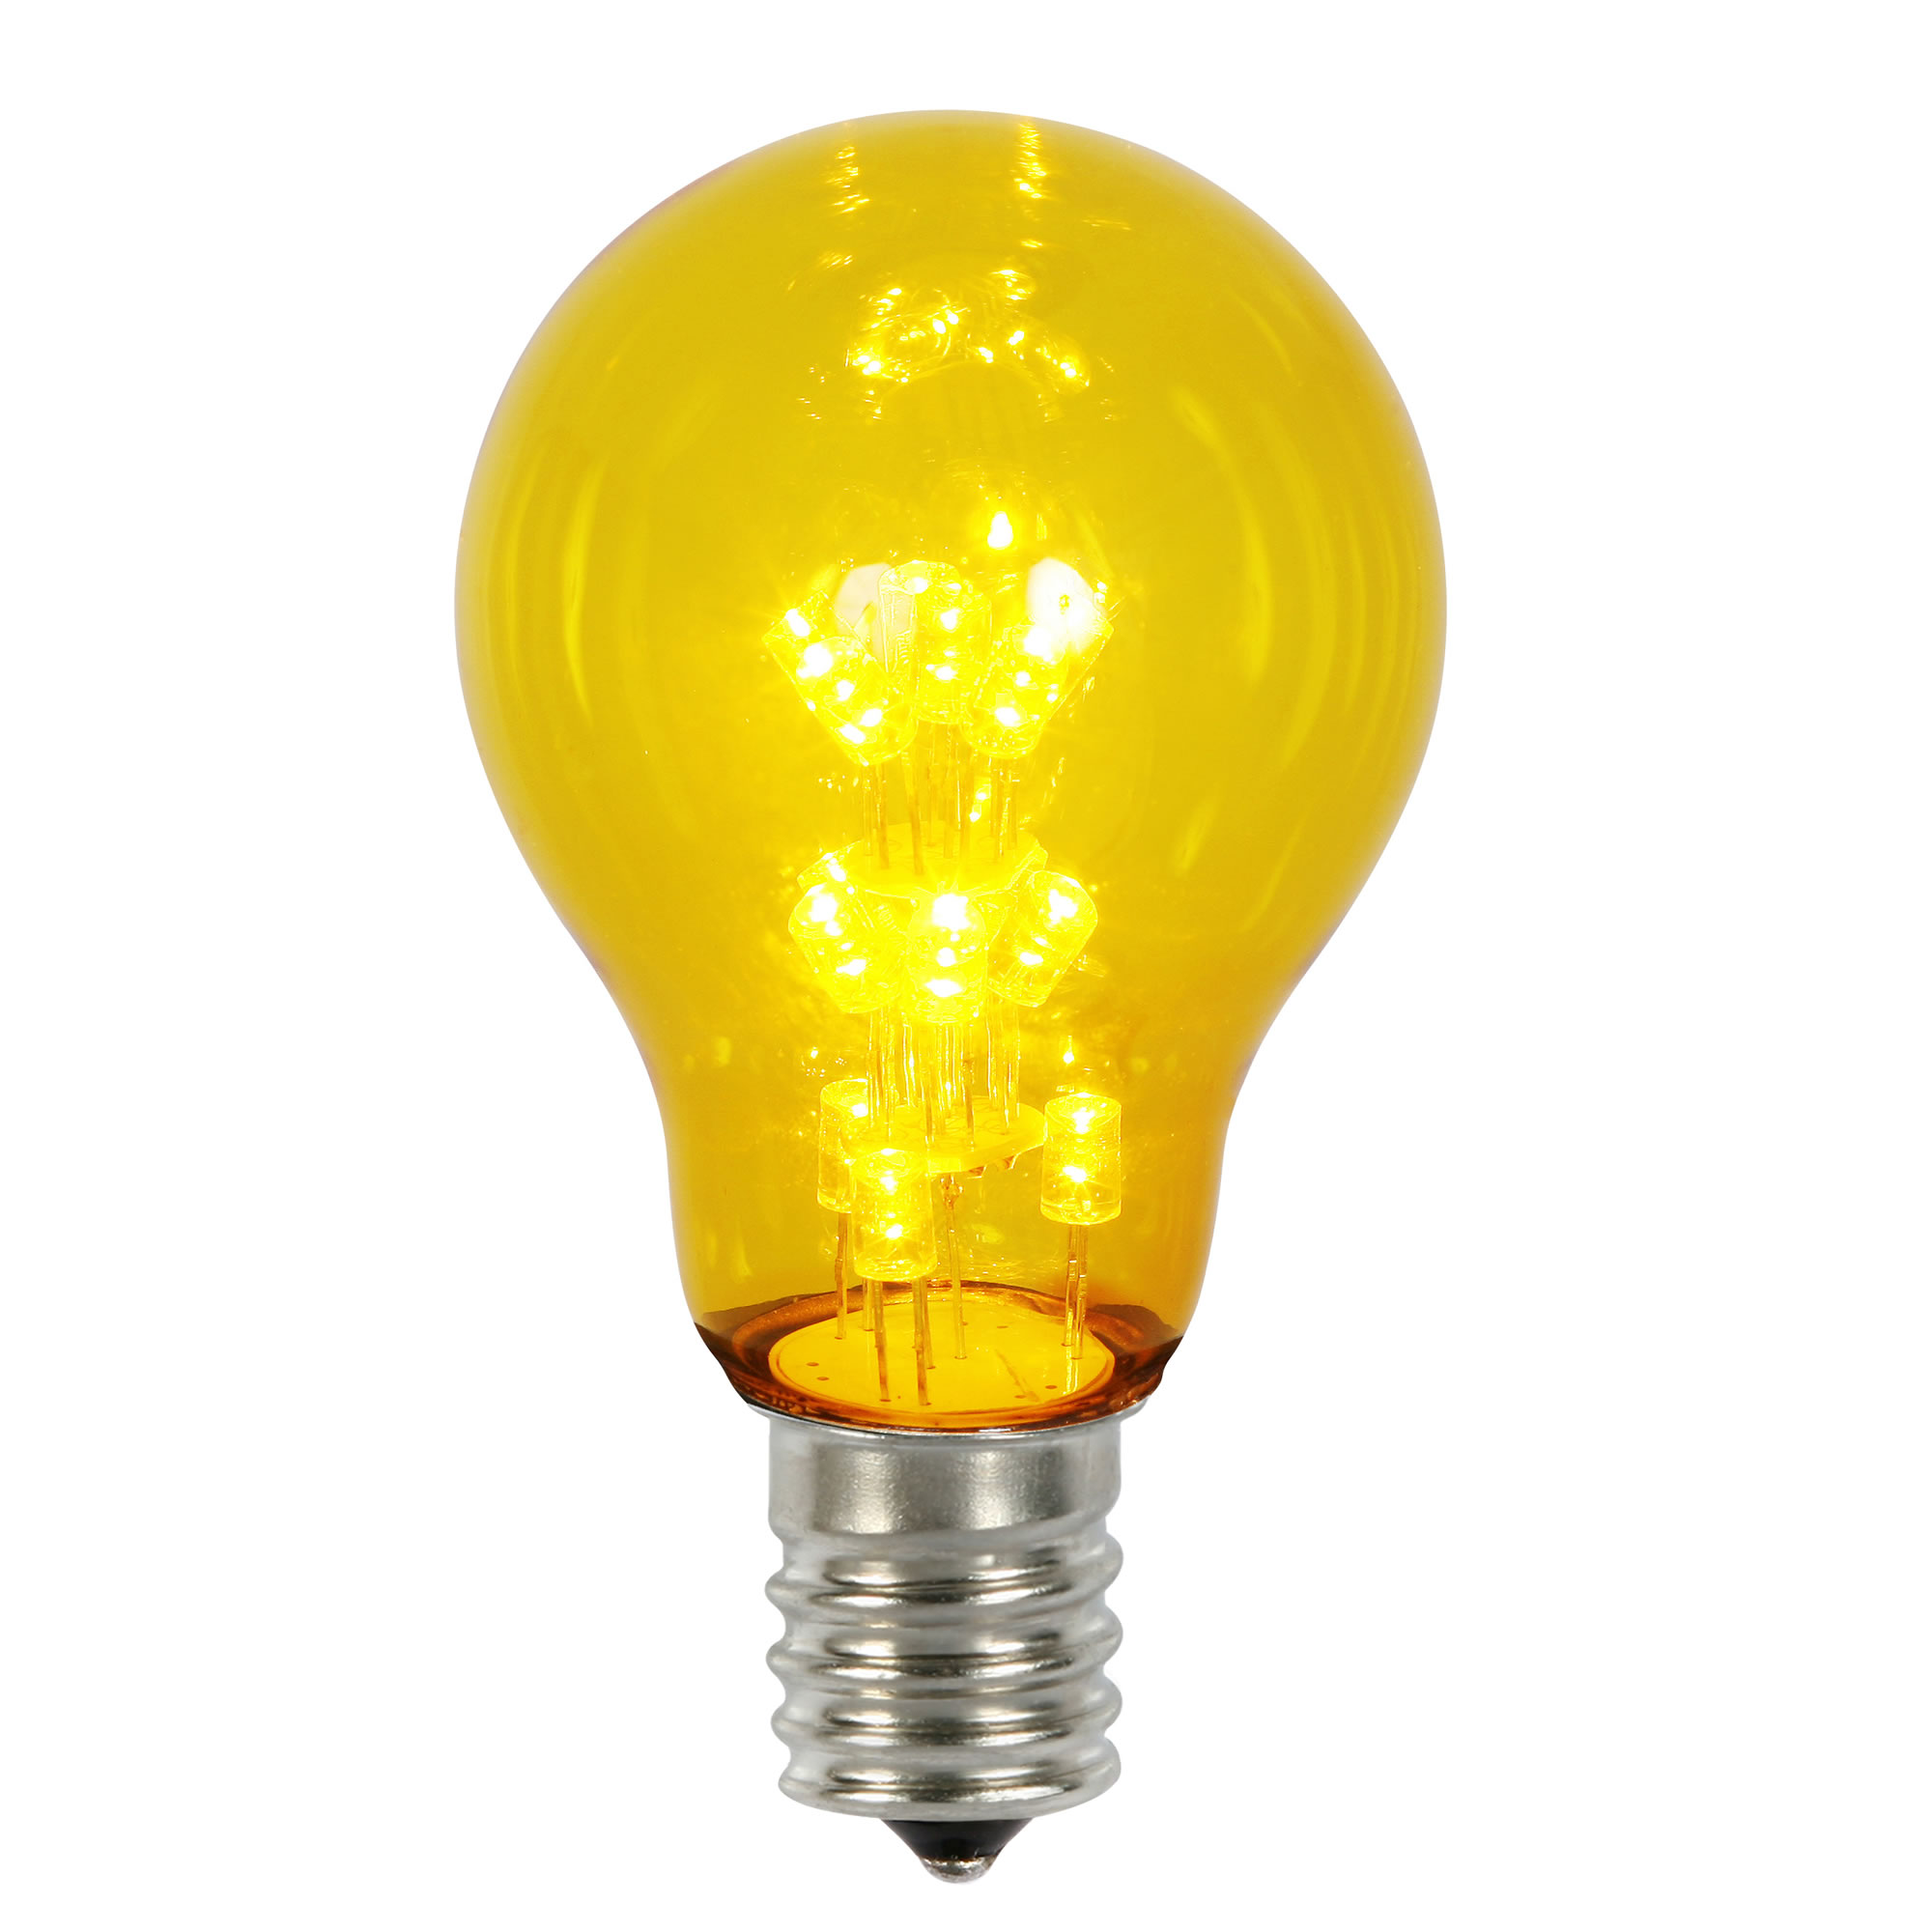 Vickerman A19 LED Yellow Transparent Replacement Bulb E26 Nickel Base